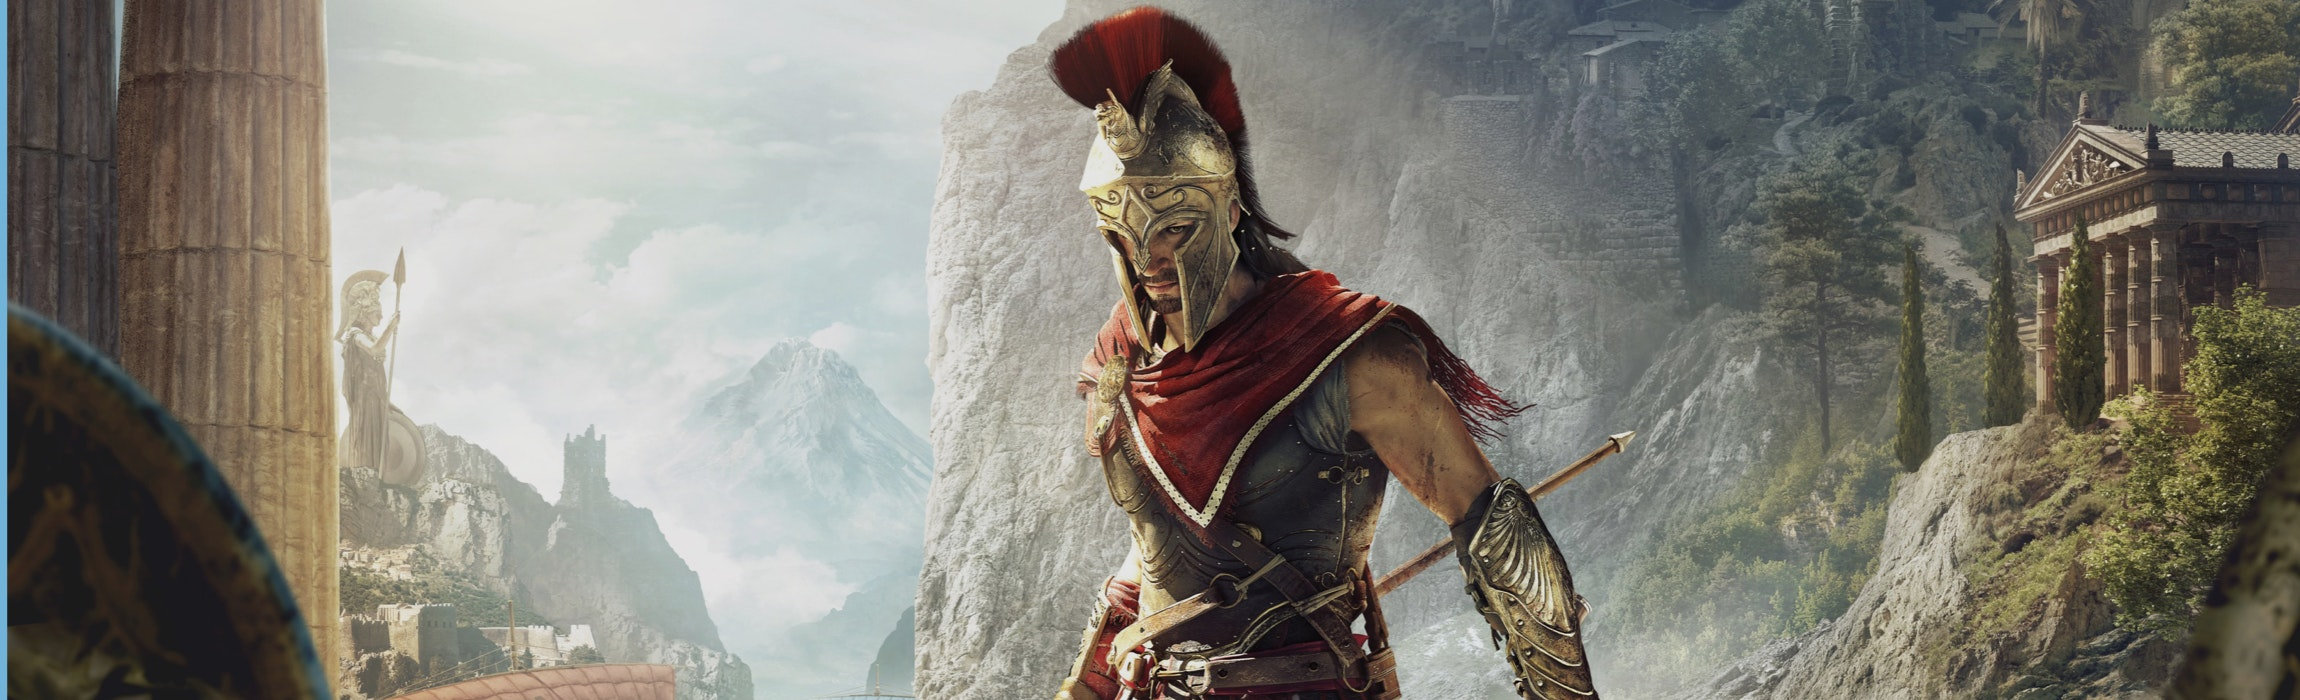 Assassin's Creed Odyssey: The Humble Store